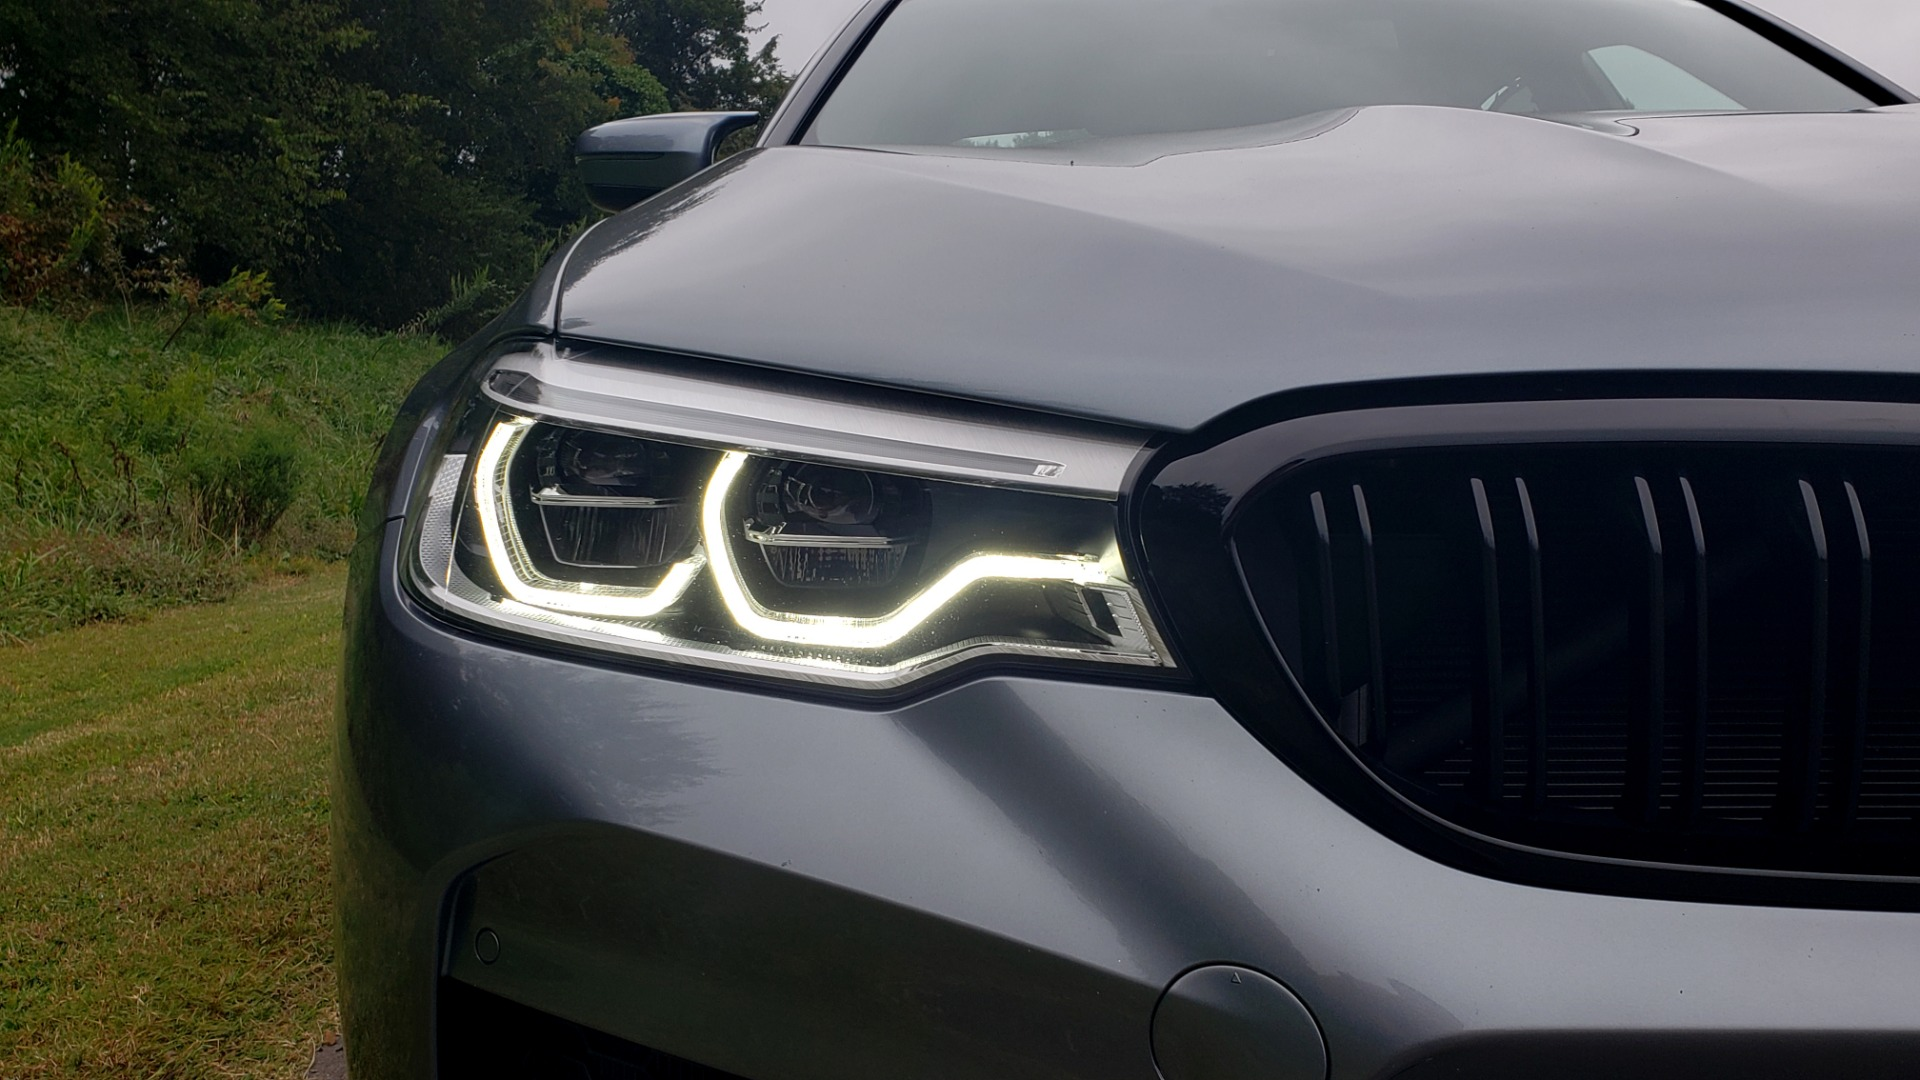 Used 2019 BMW M5 EXEC PKG / DRVR ASST PLUS / B&W SOUND / NAV / REARVIEW for sale Sold at Formula Imports in Charlotte NC 28227 15